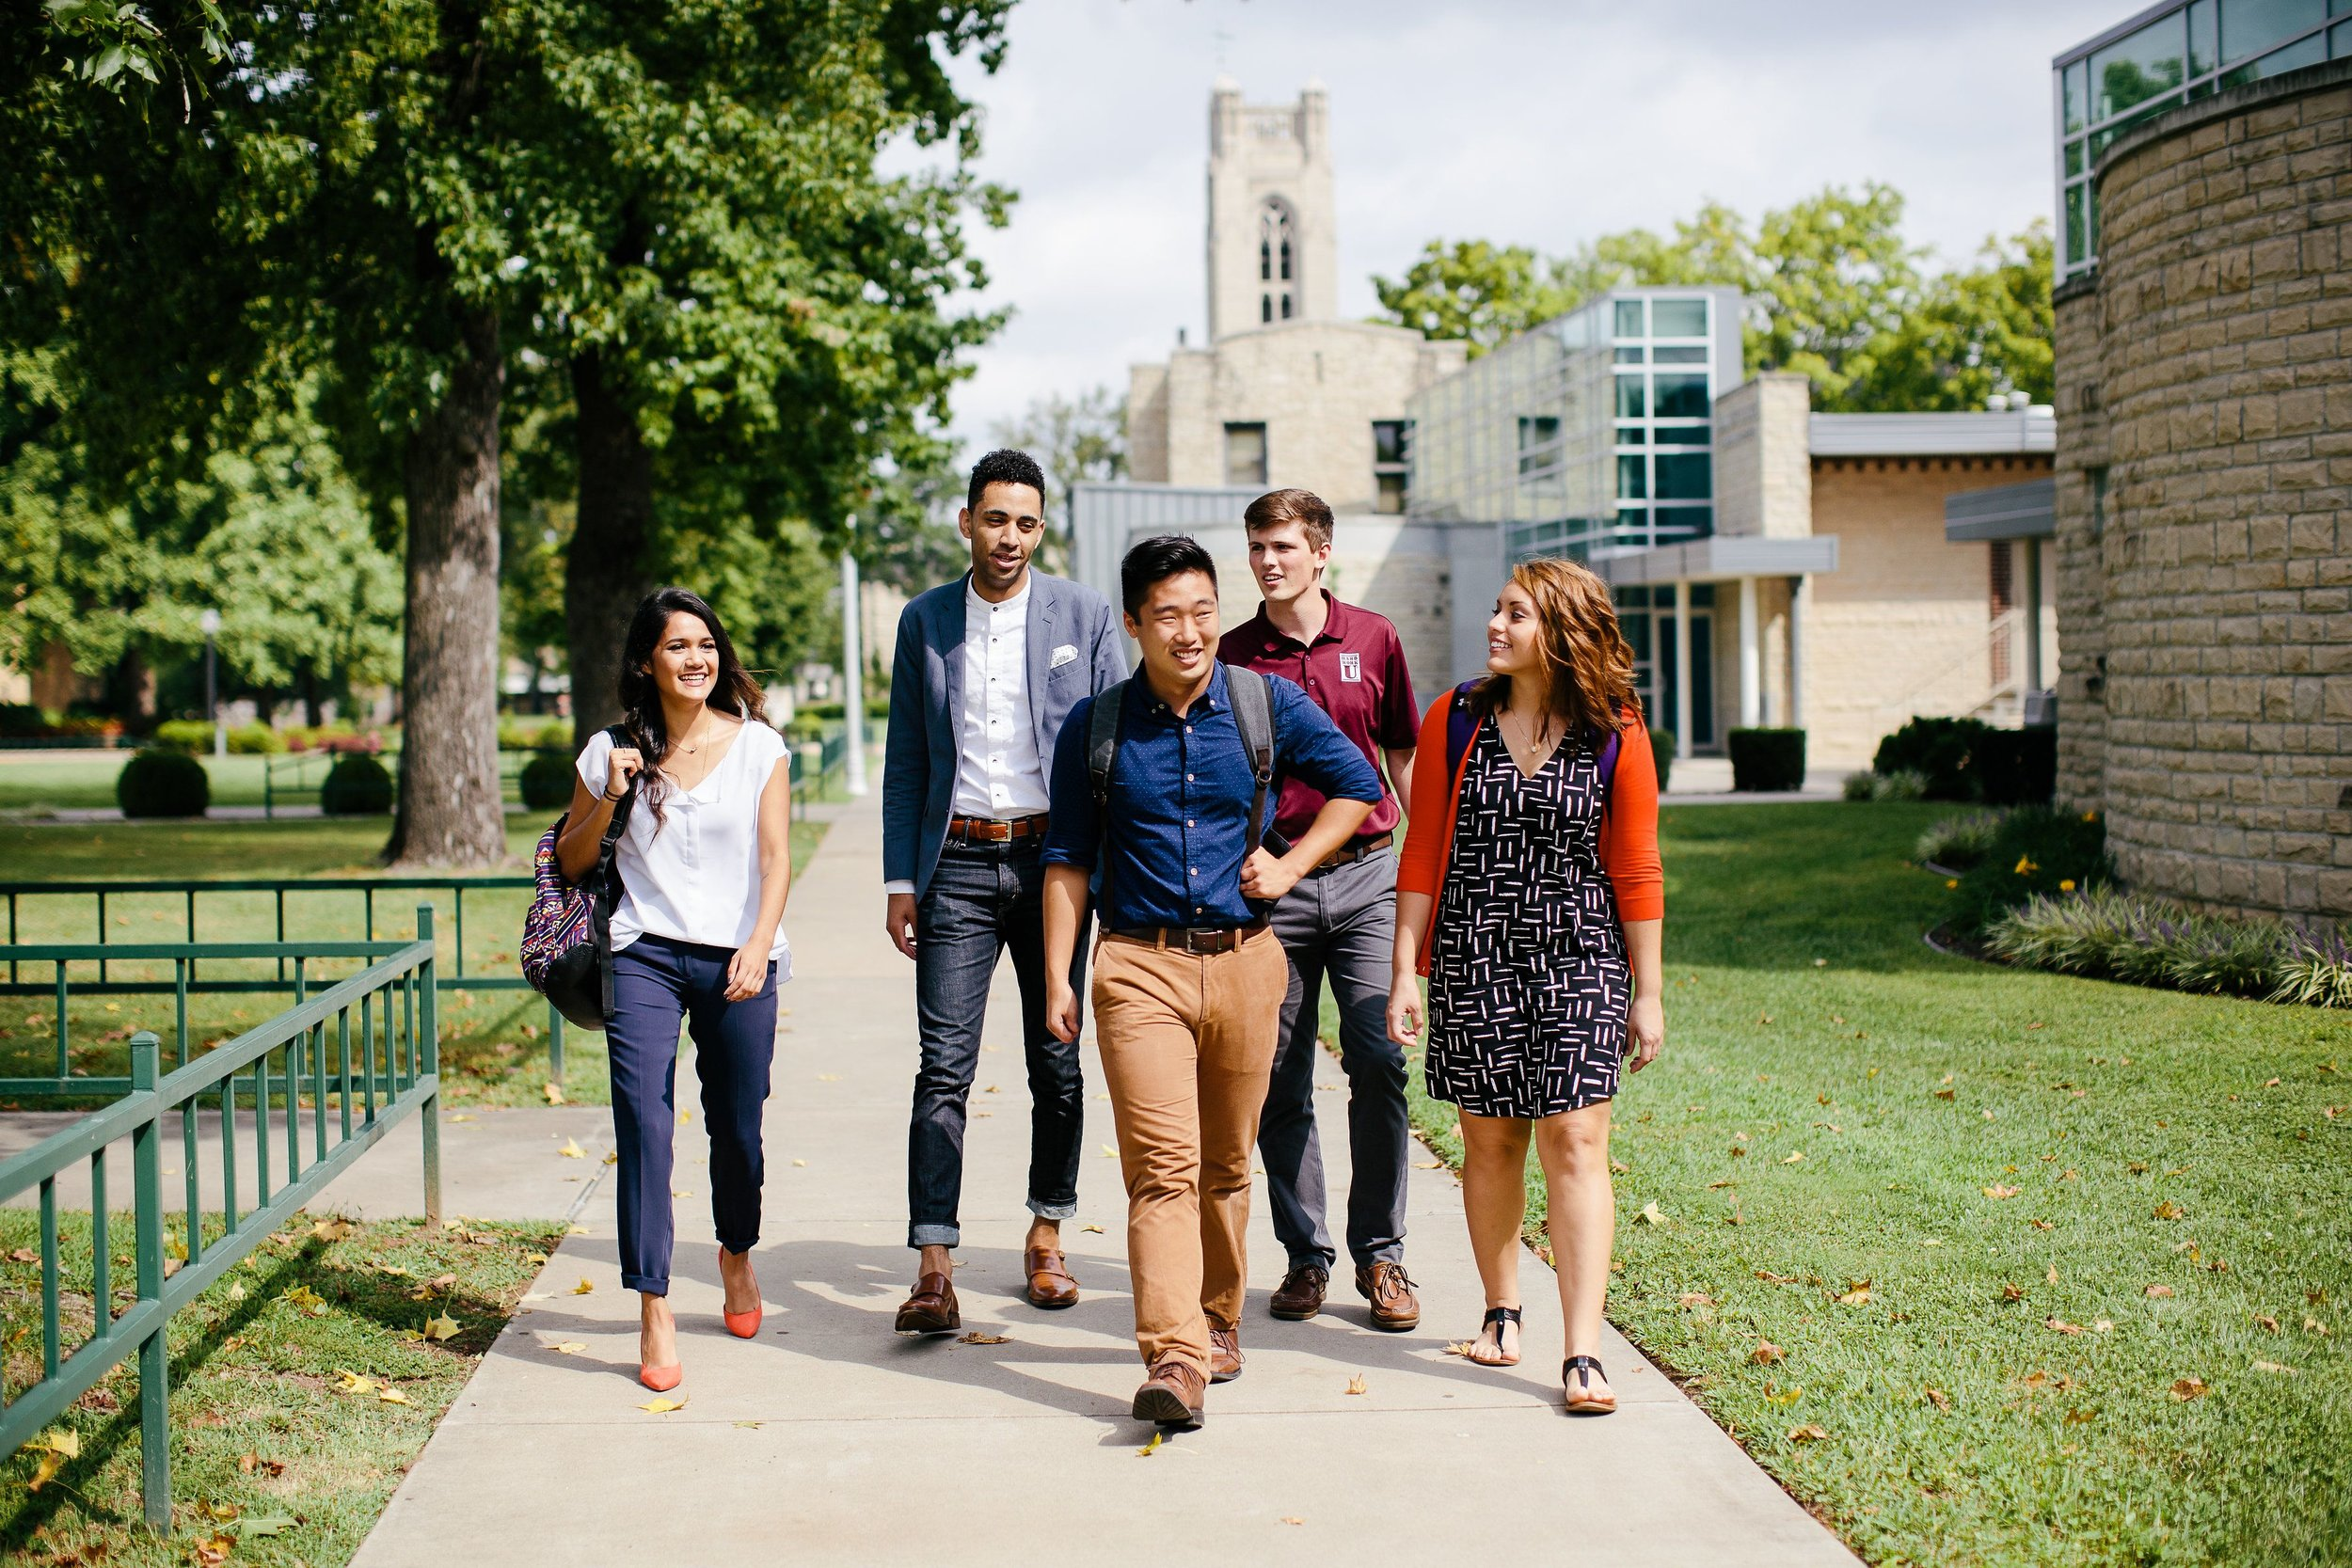 CAMPUS OPERATIONS - Overseeing and improving the day to day operations are our specialty. Our team has over 15 years of higher education experience.